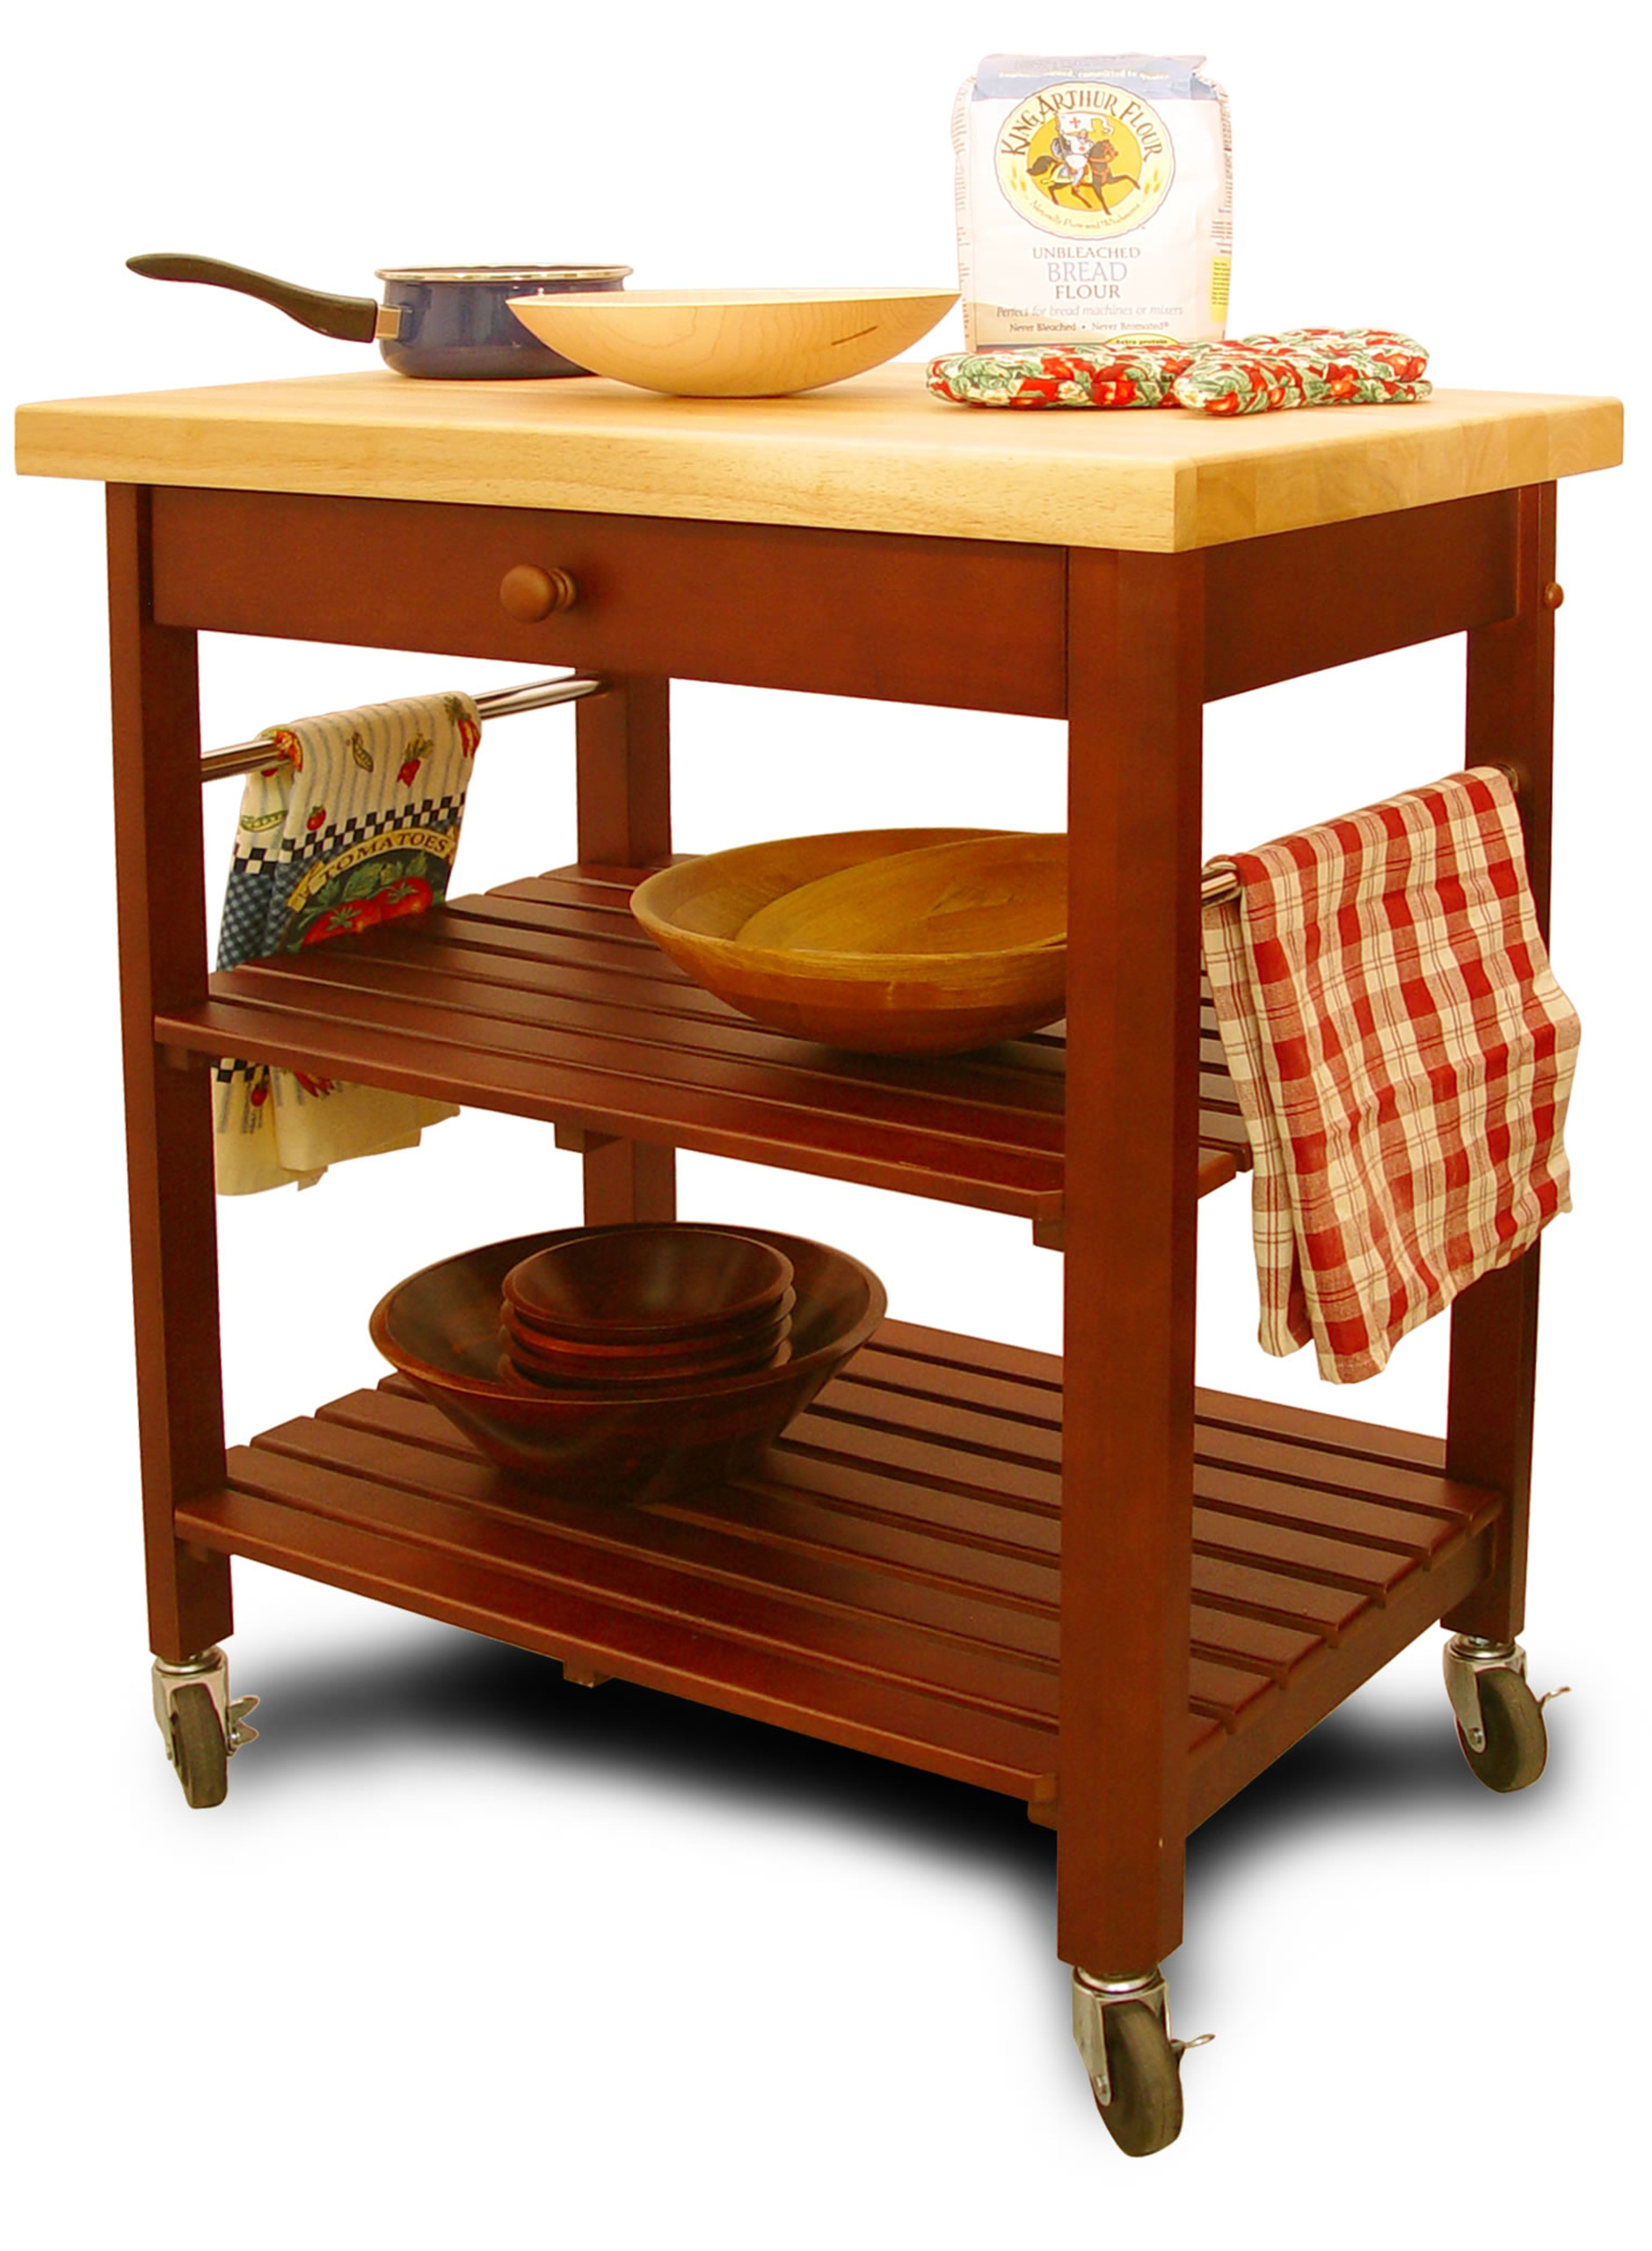 catskill craftsmen roll about kitchen cart model